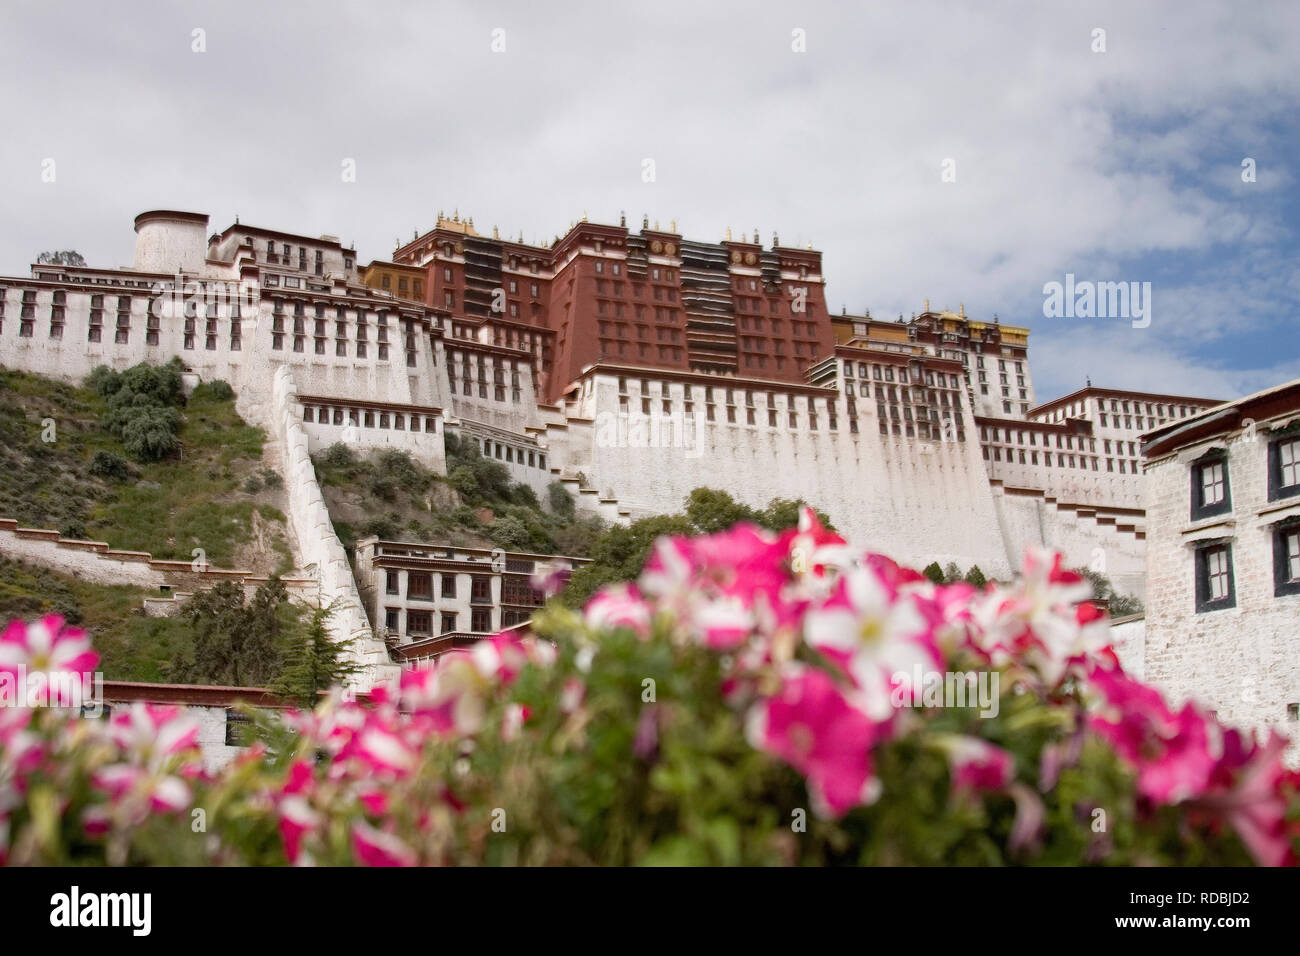 Potala place in Lhasa Tibet - Stock Image